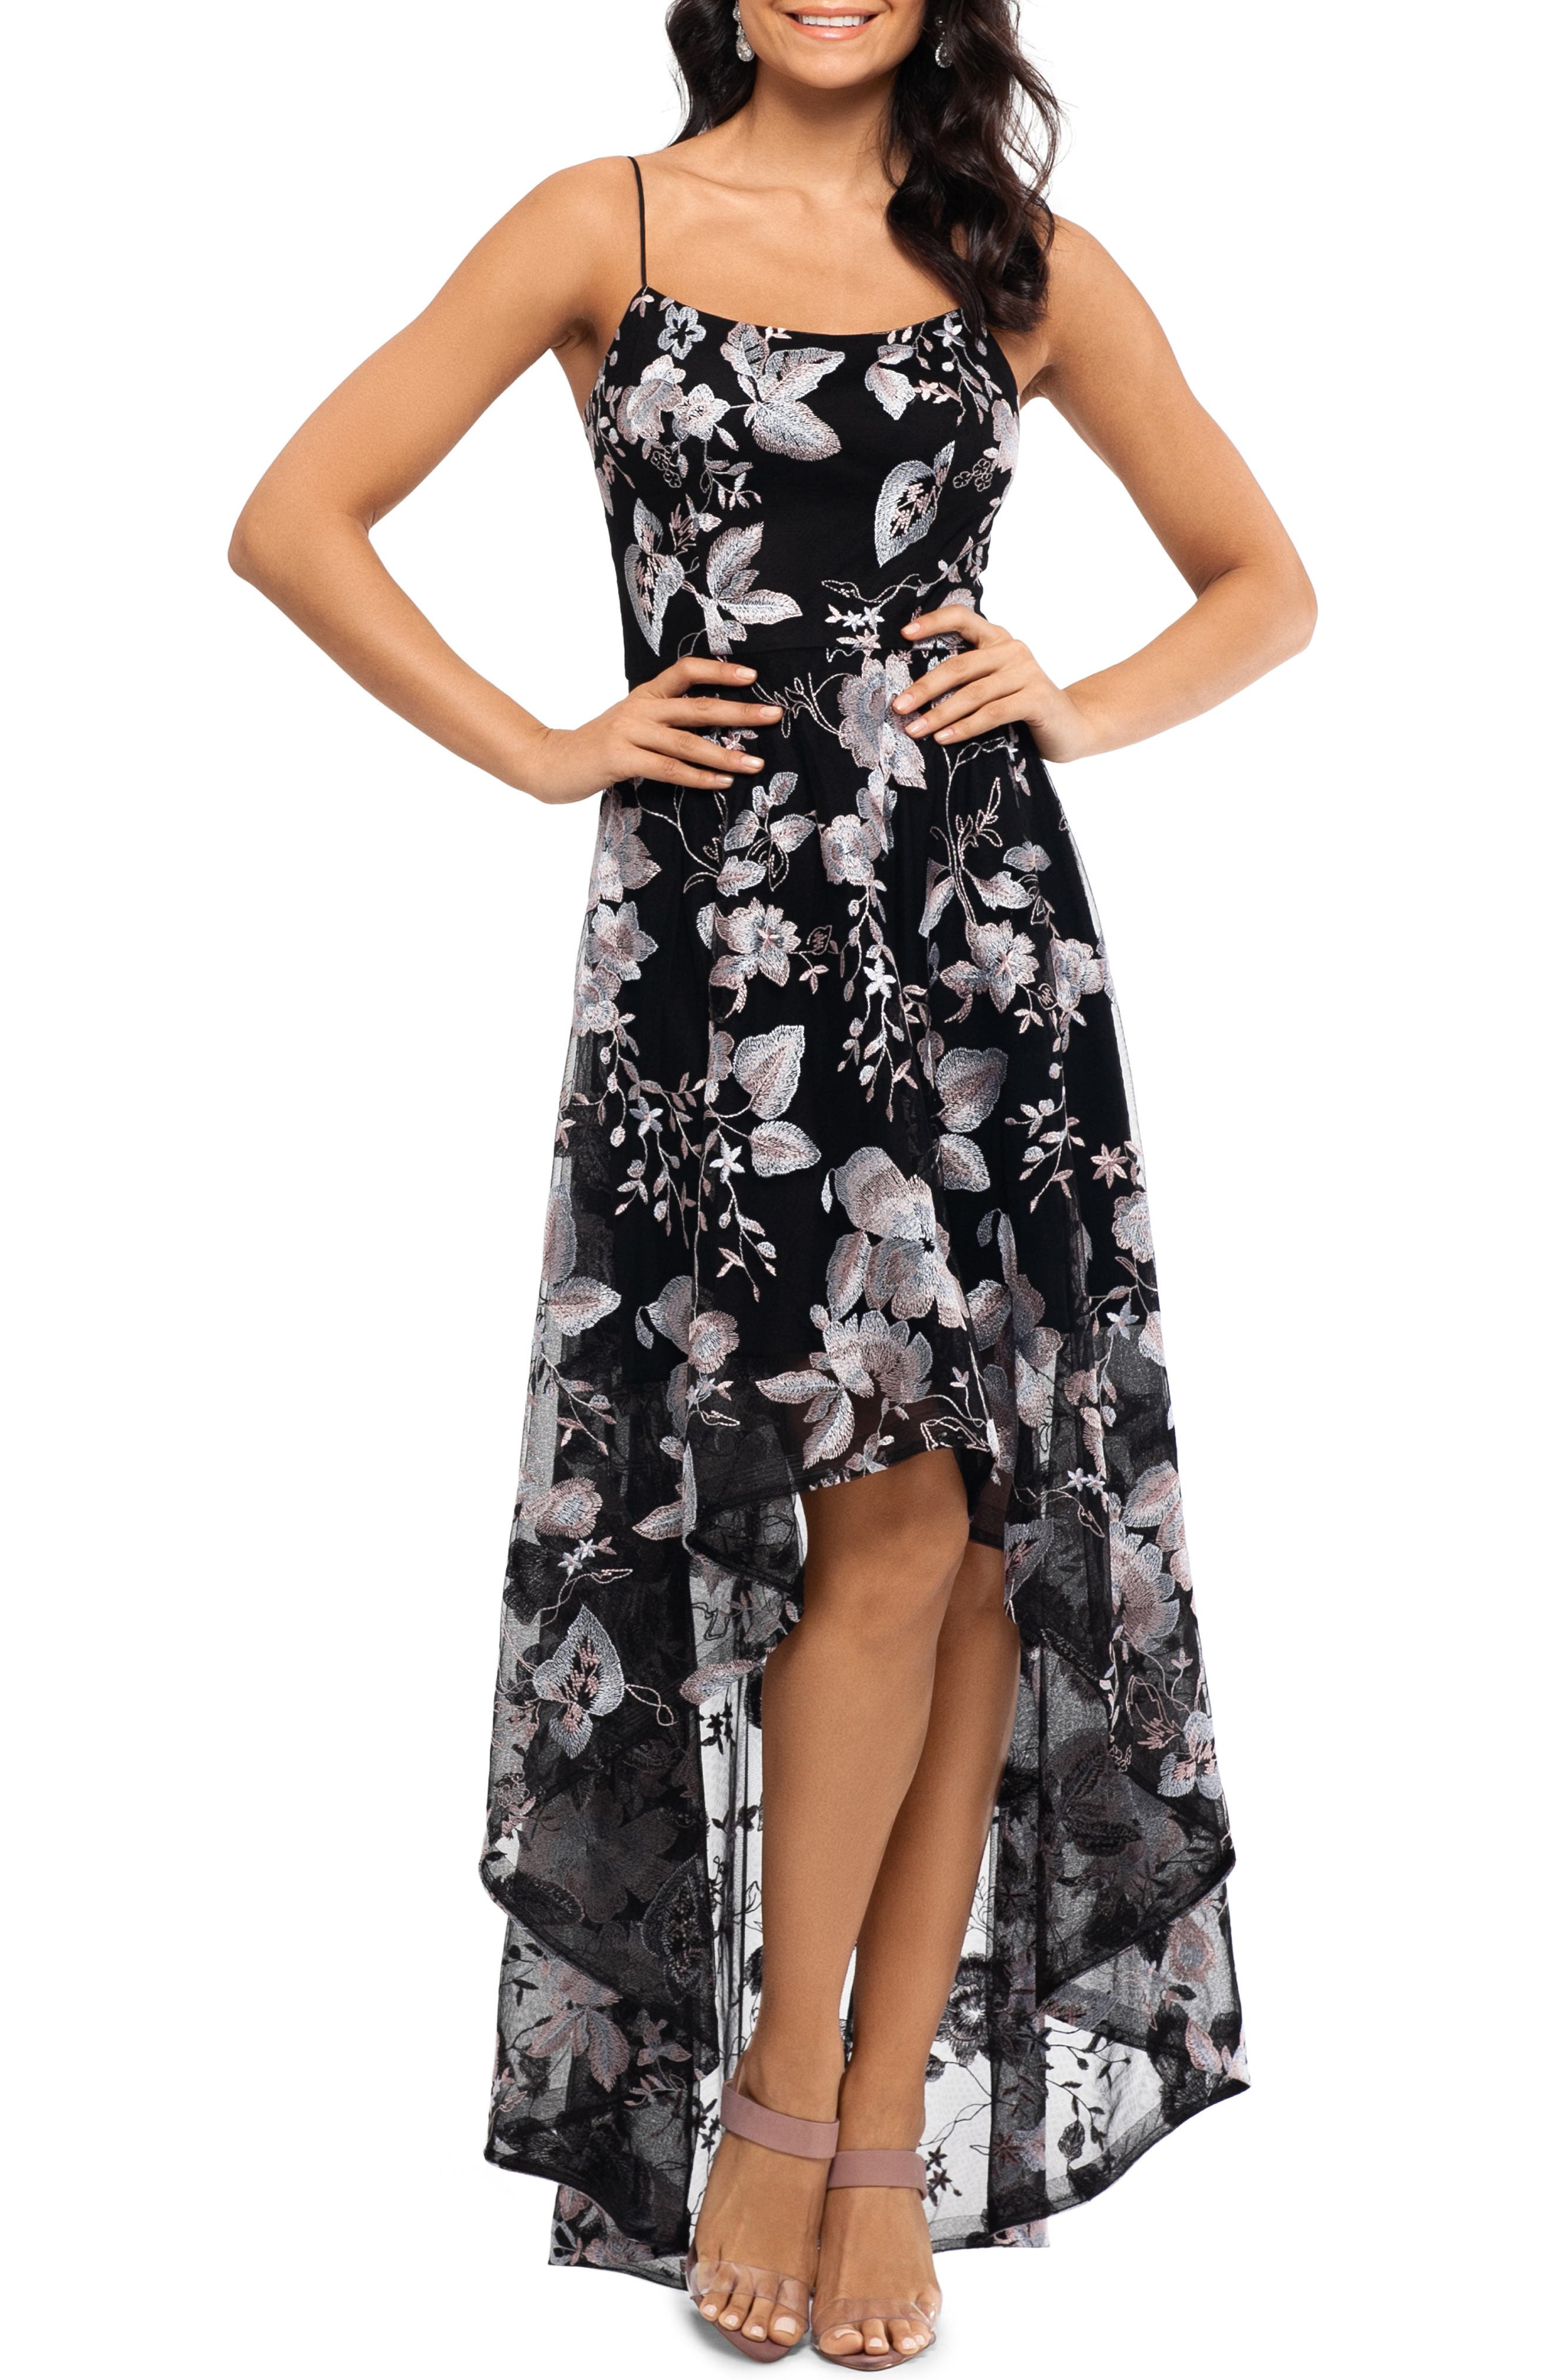 ad183c047d8c Xscape Floral Embroidery High/low Cocktail Dress, Black